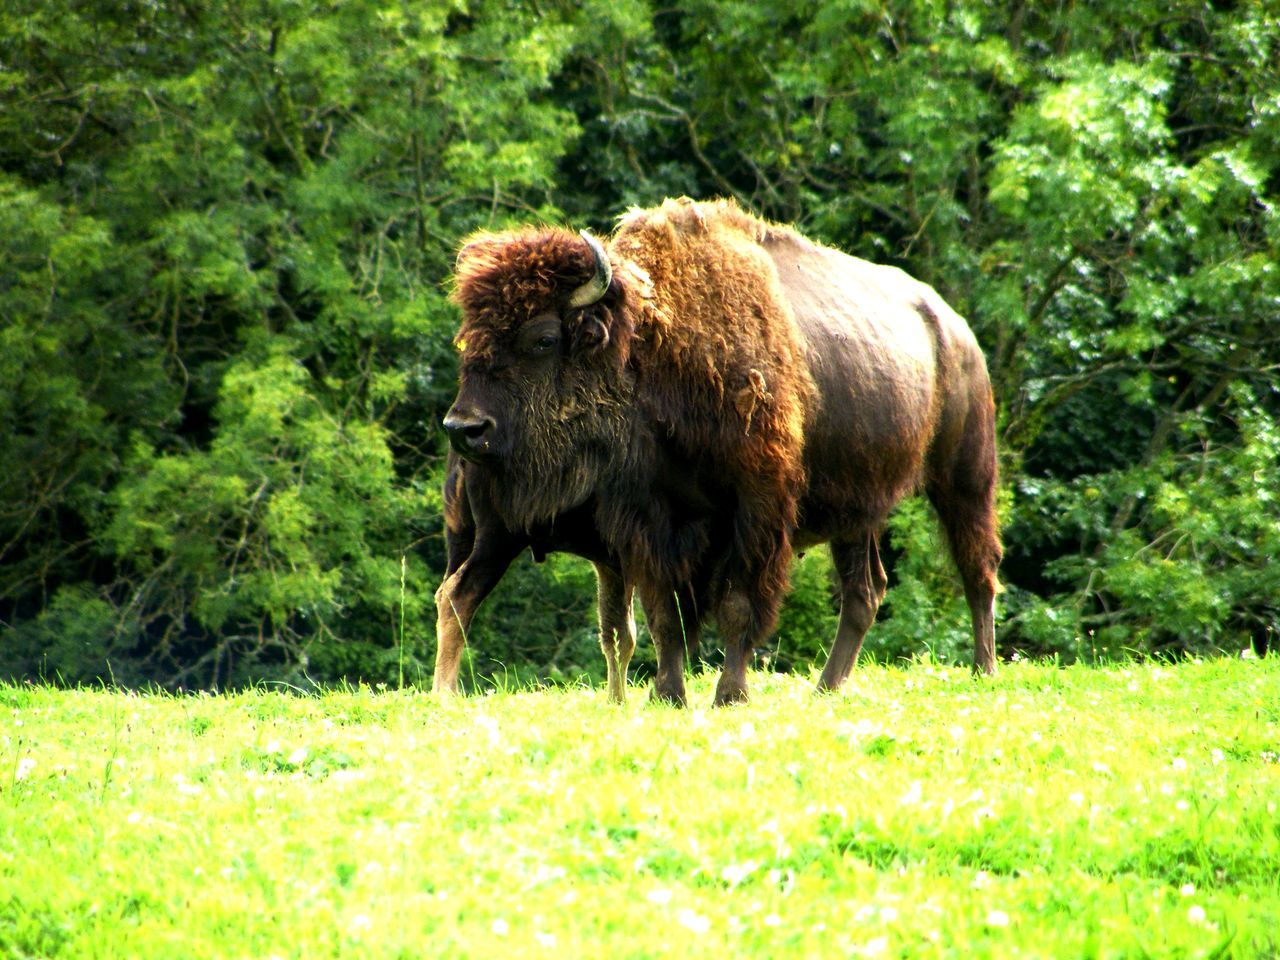 Animal Themes Beauty In Nature Bison Cattle Day Domestic Animals European Bison Grass Green Color Growth Highland Cattle Livestock Mammal Nature No People One Animal Outdoors Wisent